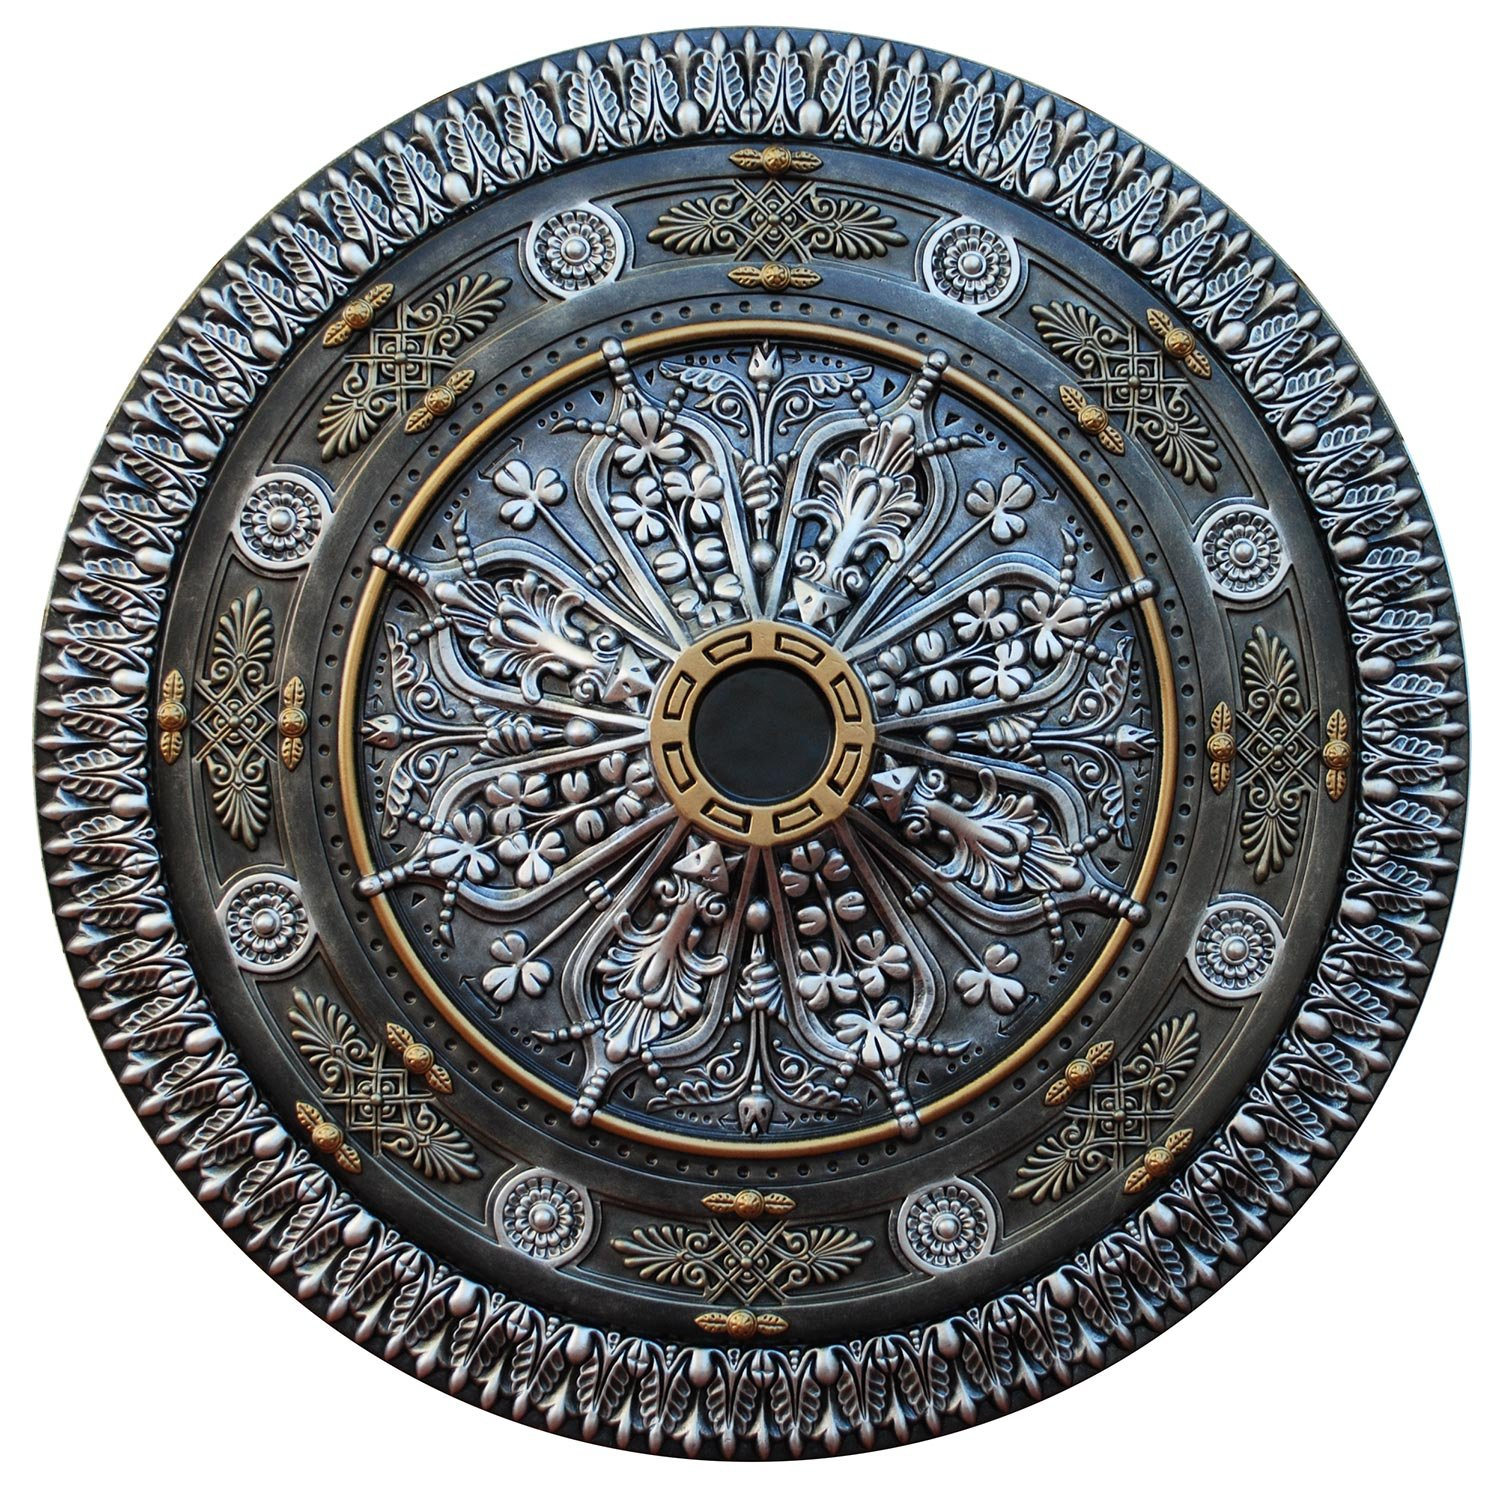 Fine Art Deco ''Arabic Caprice III'' Hand Painted Ceiling Medallion 37-1/2 In. Finished in Silver, Ivy and Brass